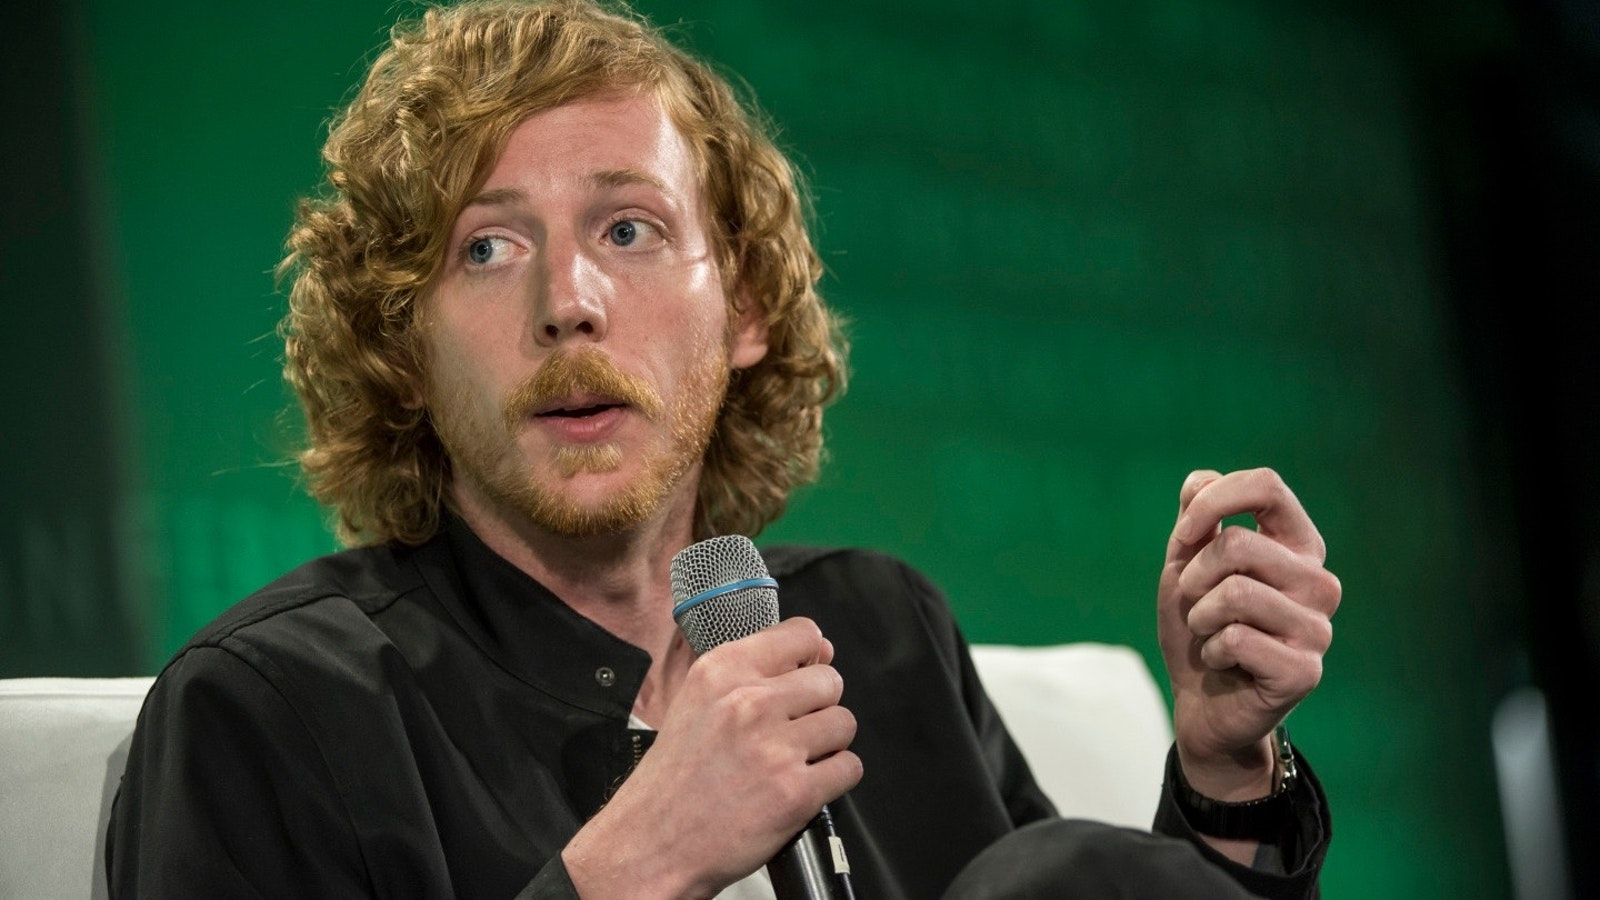 Chris Wanstrath, CEO of GitHub, which uses a bot to help run its business. Photo by Bloomberg.